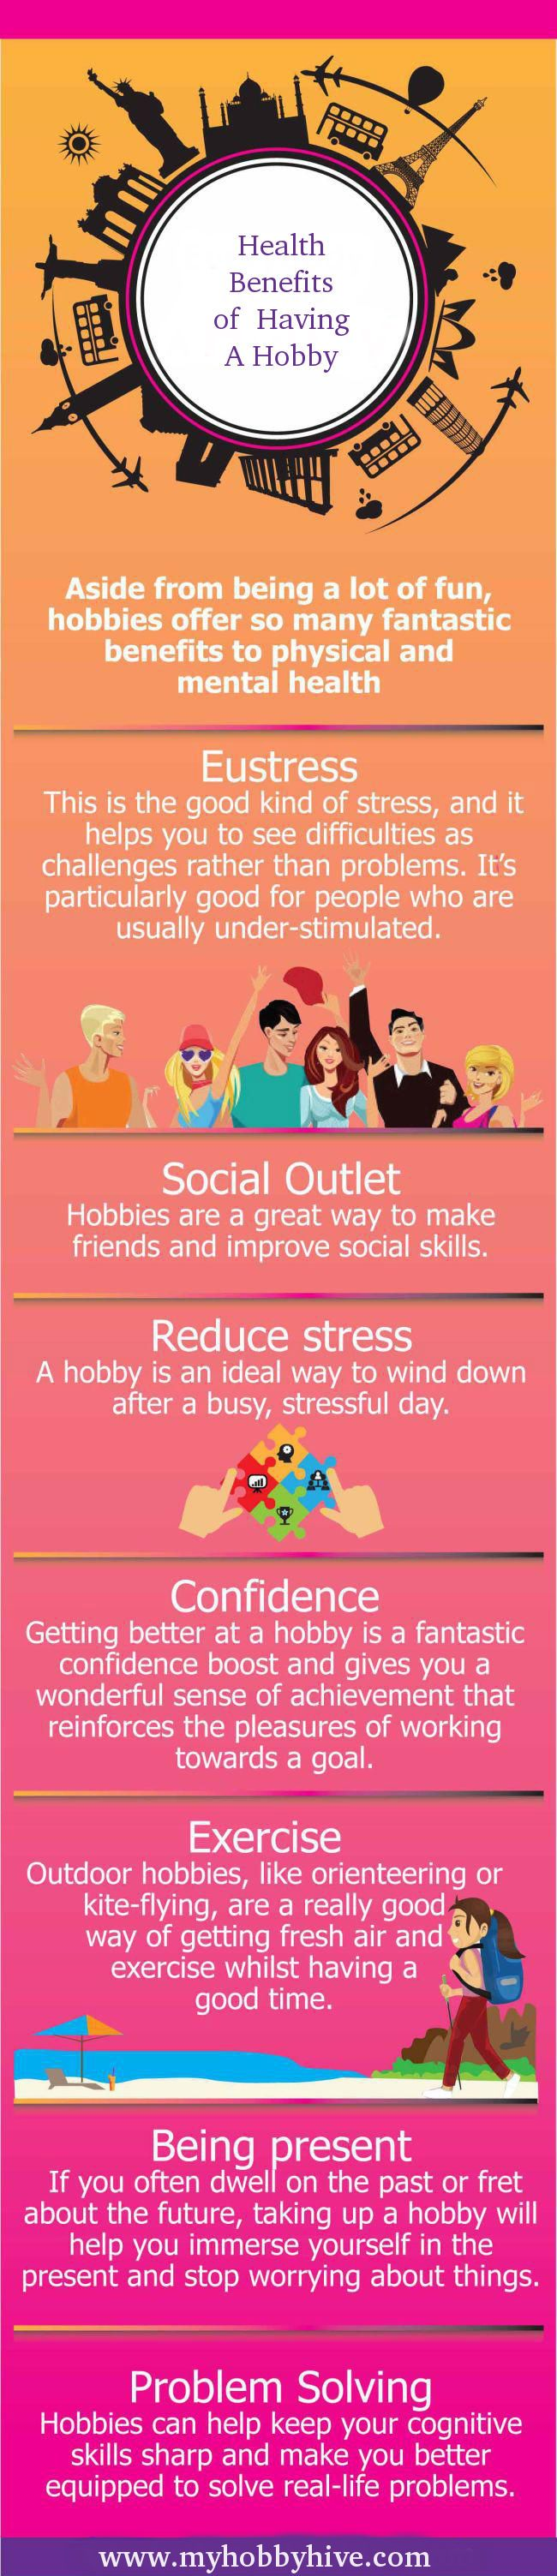 top ideas about hobbies and interest activities having hobbies and leisure activities are really very important hobbies are not just a fun